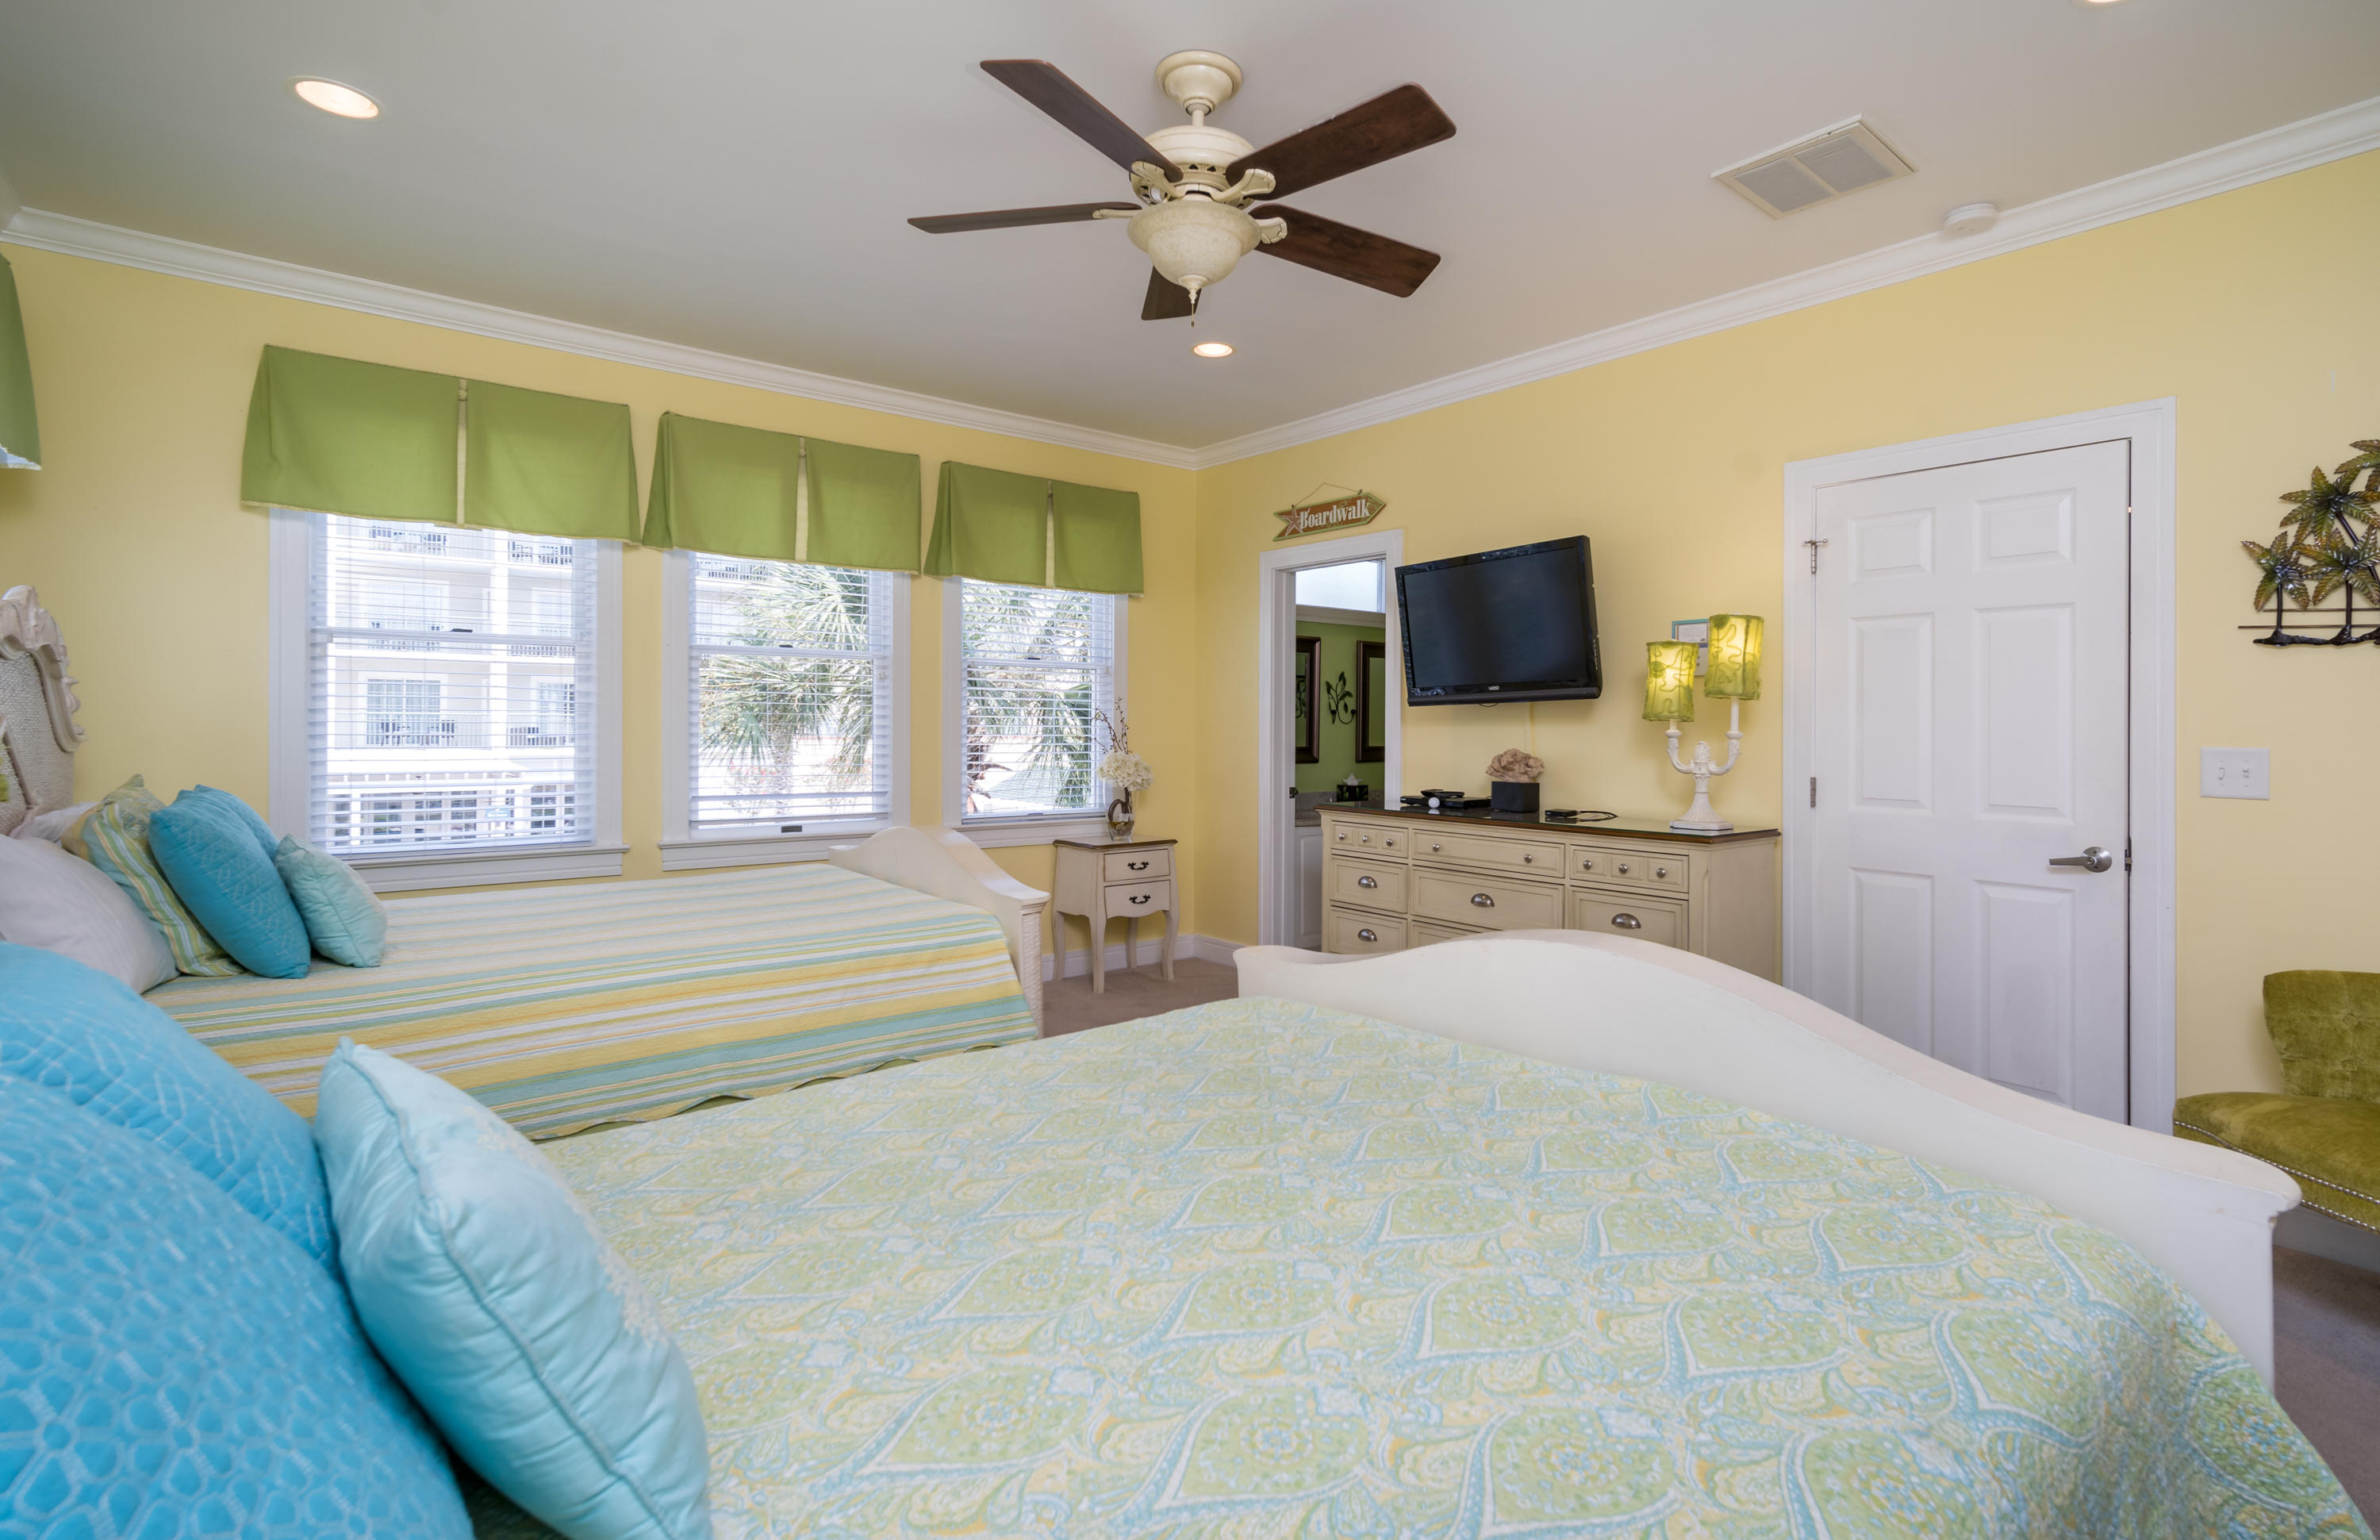 Wild Dunes Resort Homes For Sale - 121 Grand Pavilion, Isle of Palms, SC - 17